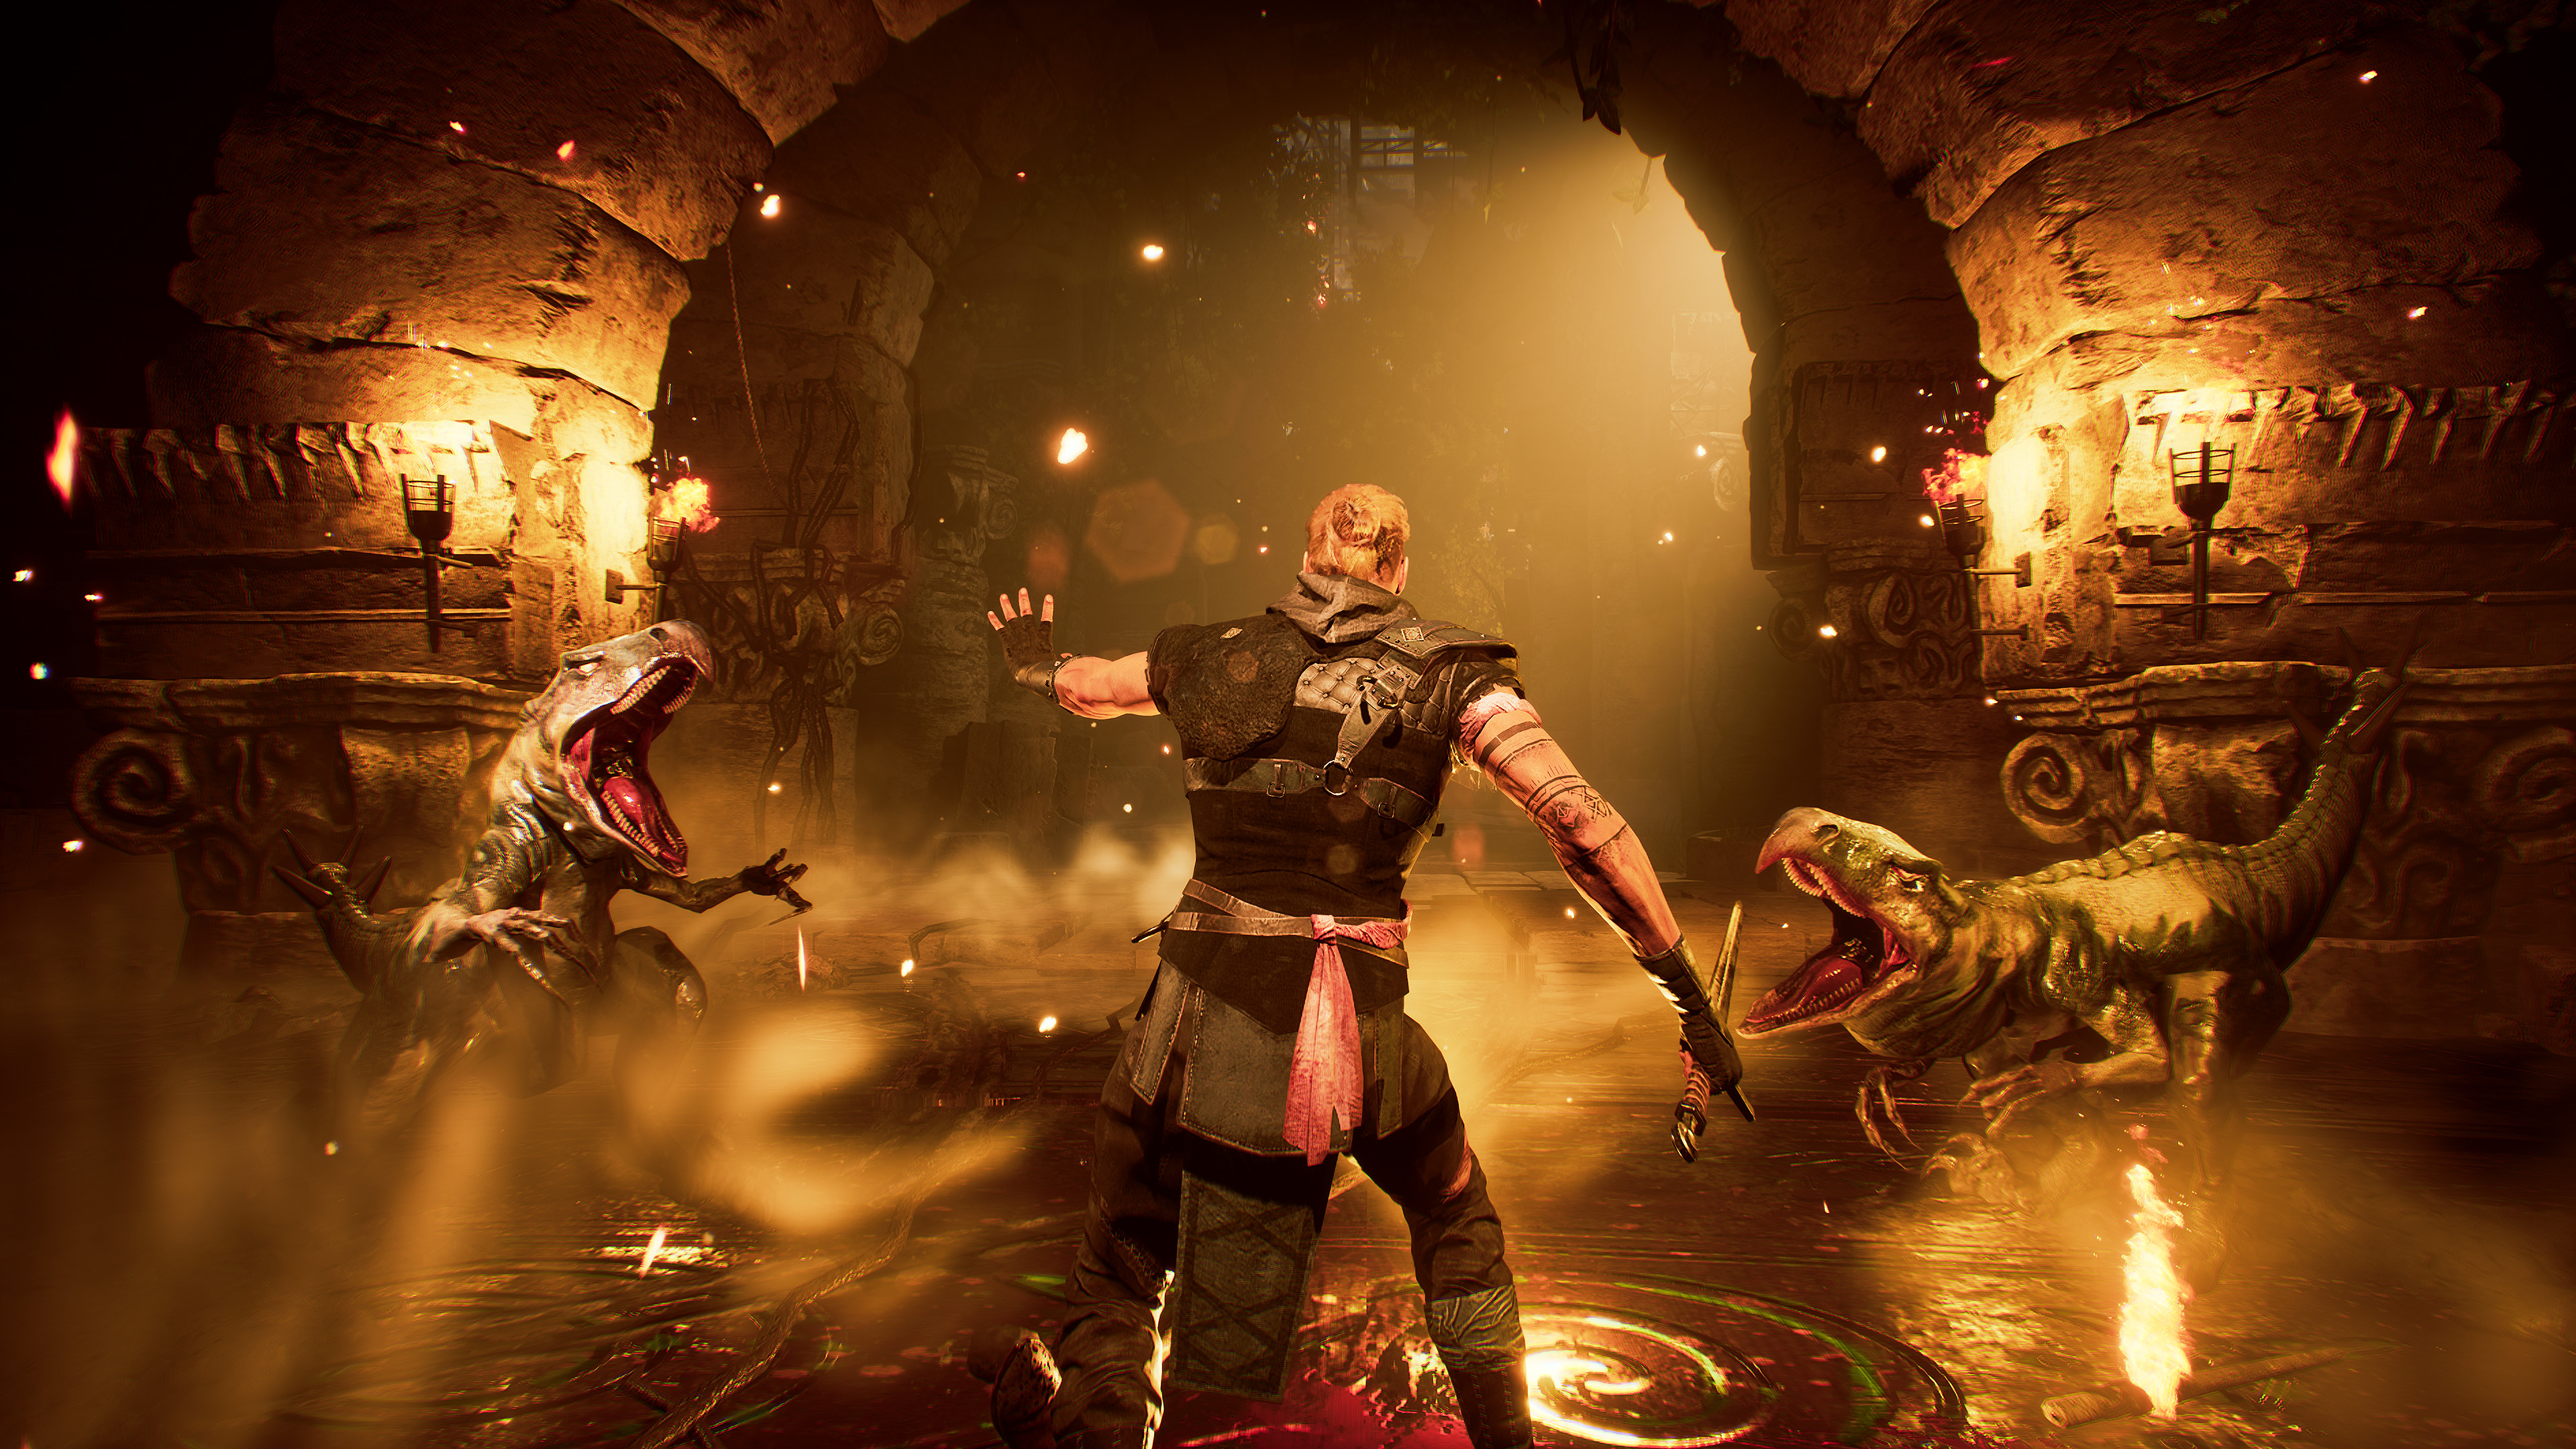 The player character in Gothic fights three raptor-like lizards in a sewer.